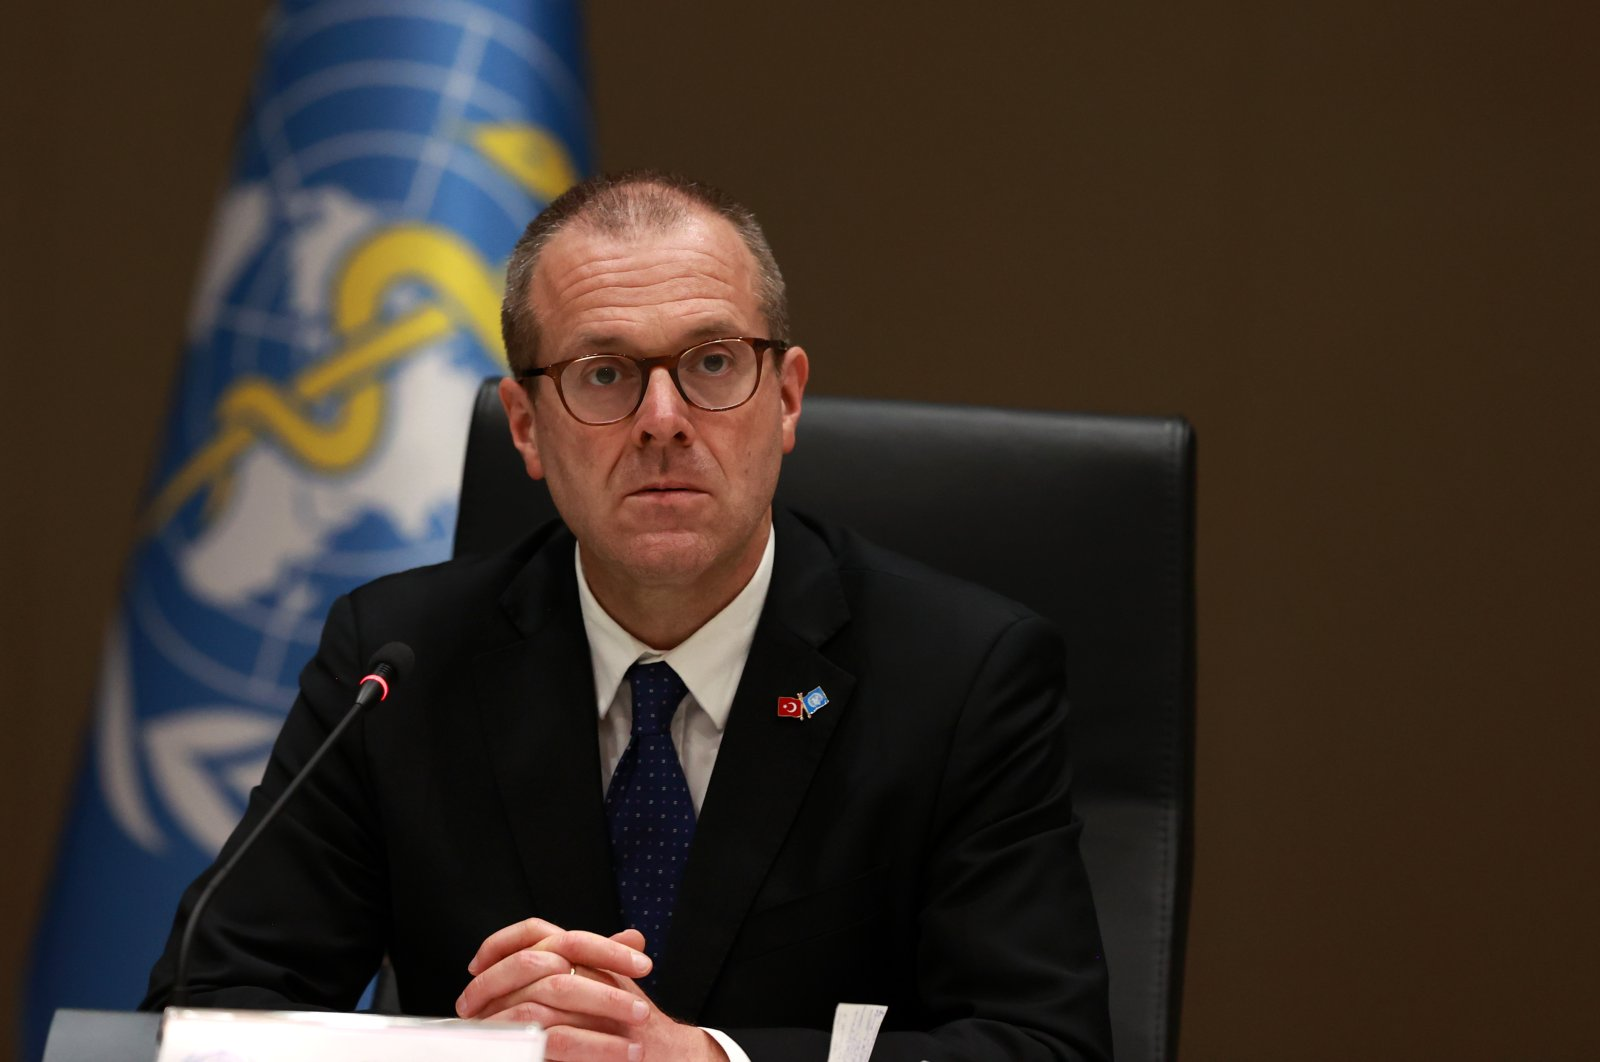 WHO Europe Director Hans Kluge during the press conference with Health Minister Fahrettin Koca, in Ankara, July 9, 2020 (AA Photo)